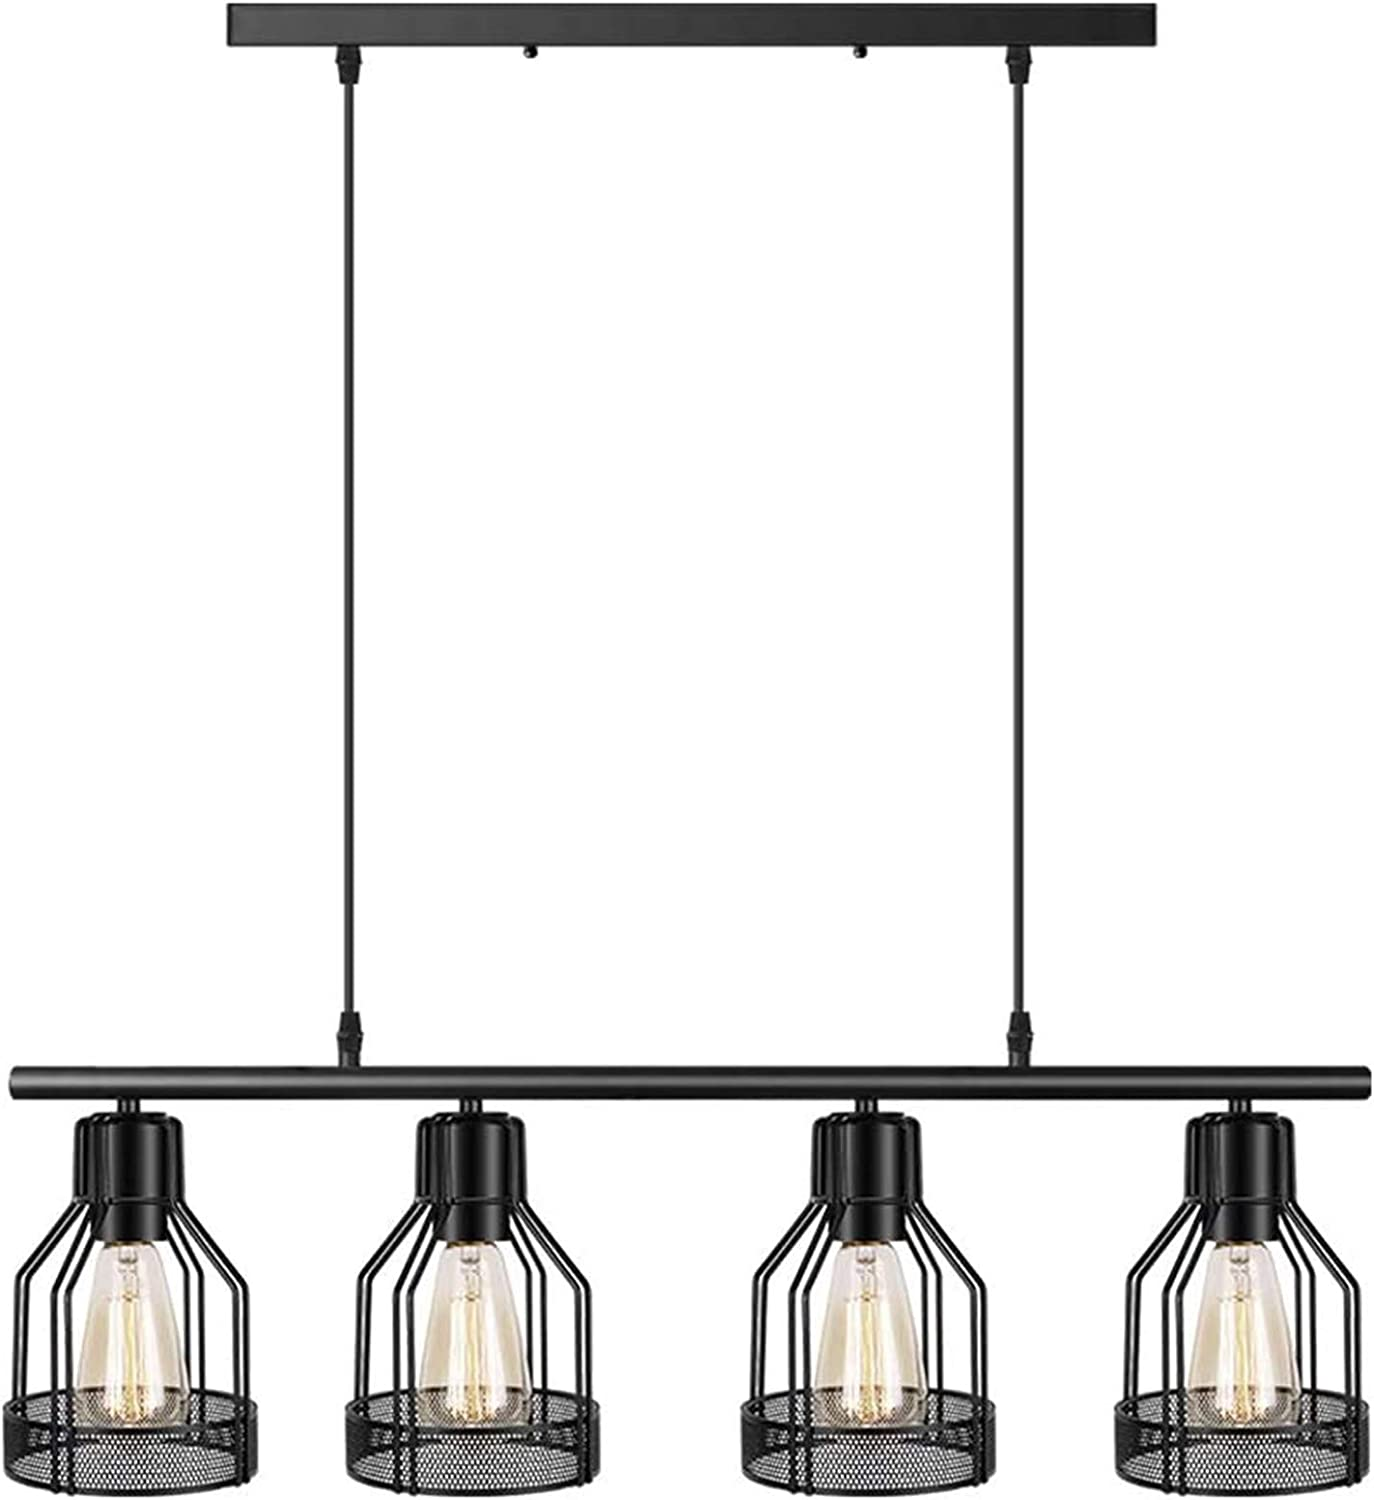 4 Light Pendant Lighting Kitchen Island Light Fixture With Paint Finish Cage Lampshade Modern Industrial Chandelier